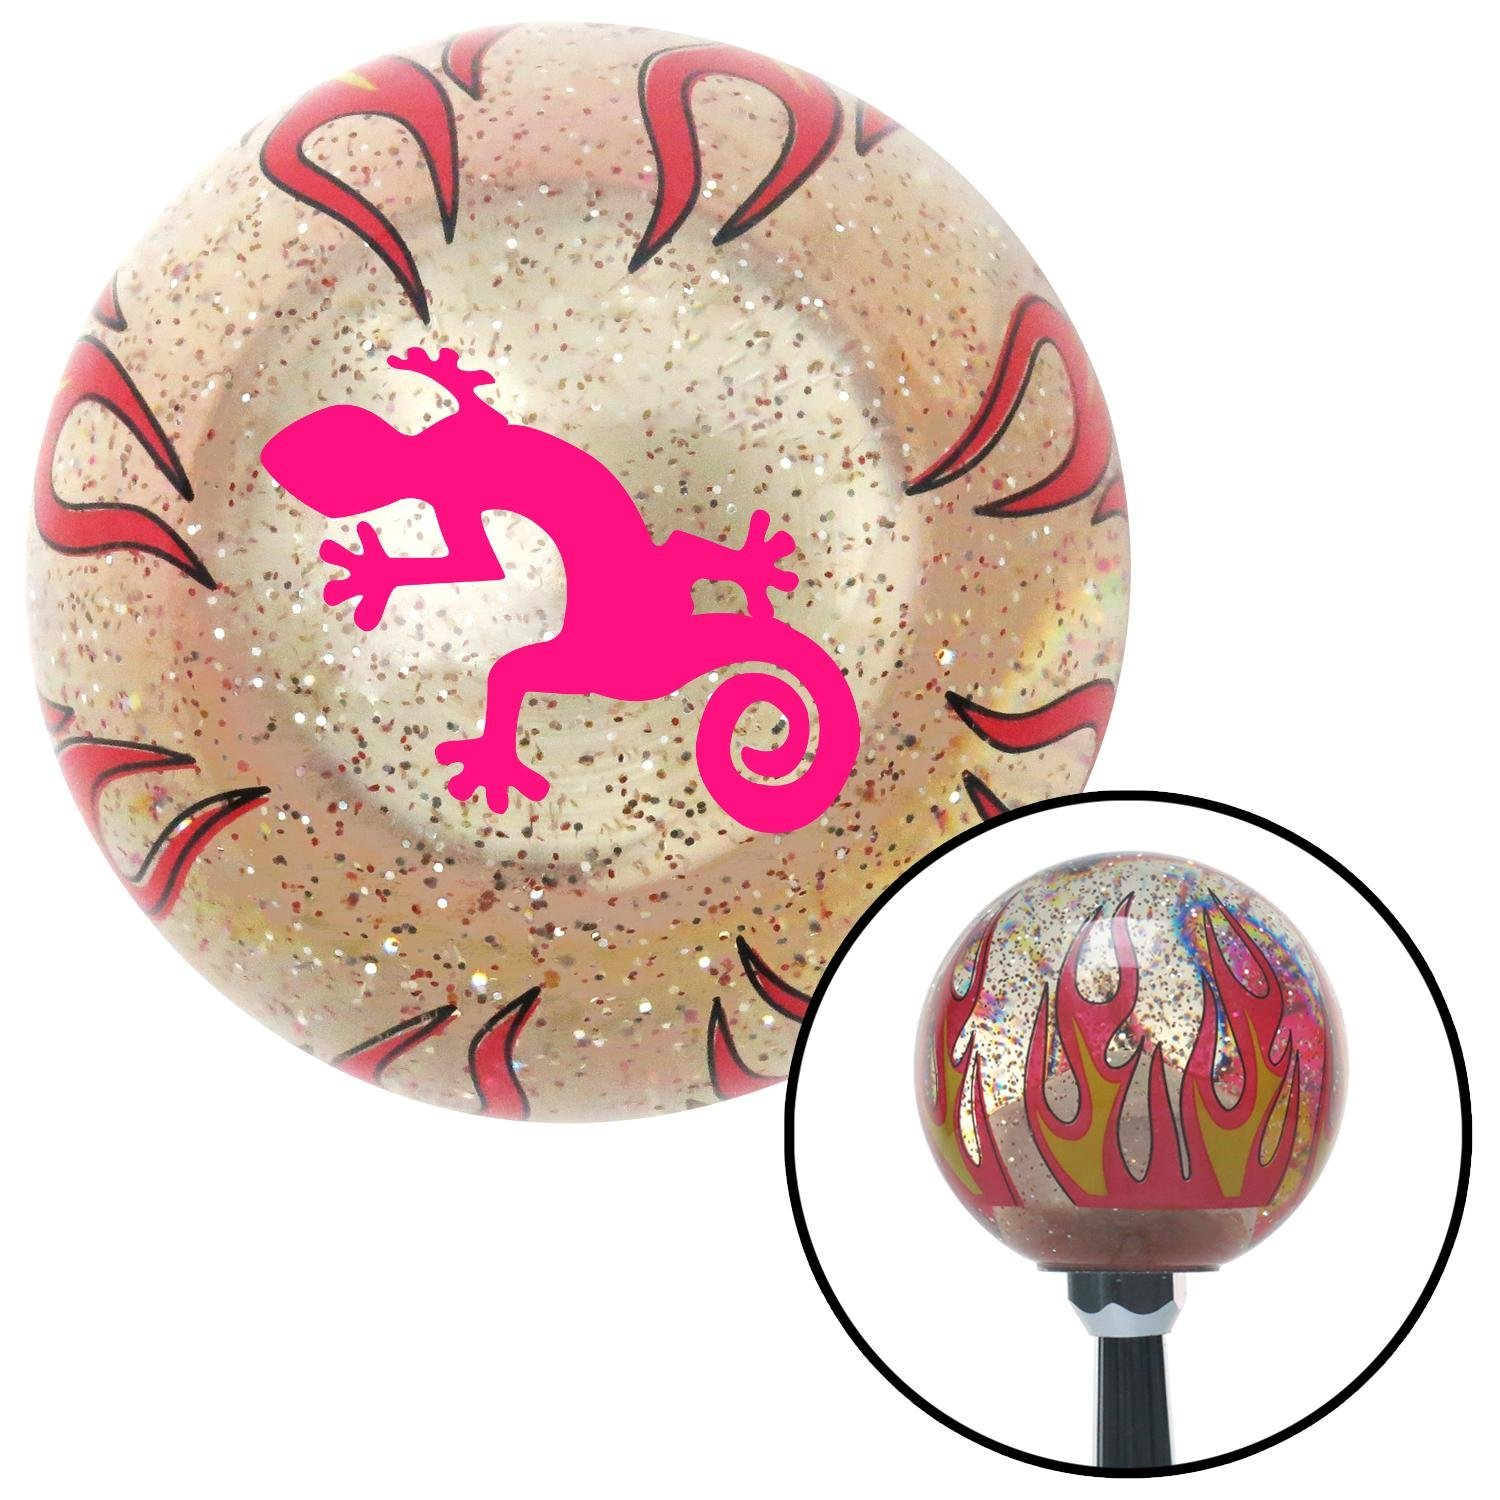 American Shifter 232472 Clear Flame Metal Flake Shift Knob with M16 x 1.5 Insert Pink Gecko